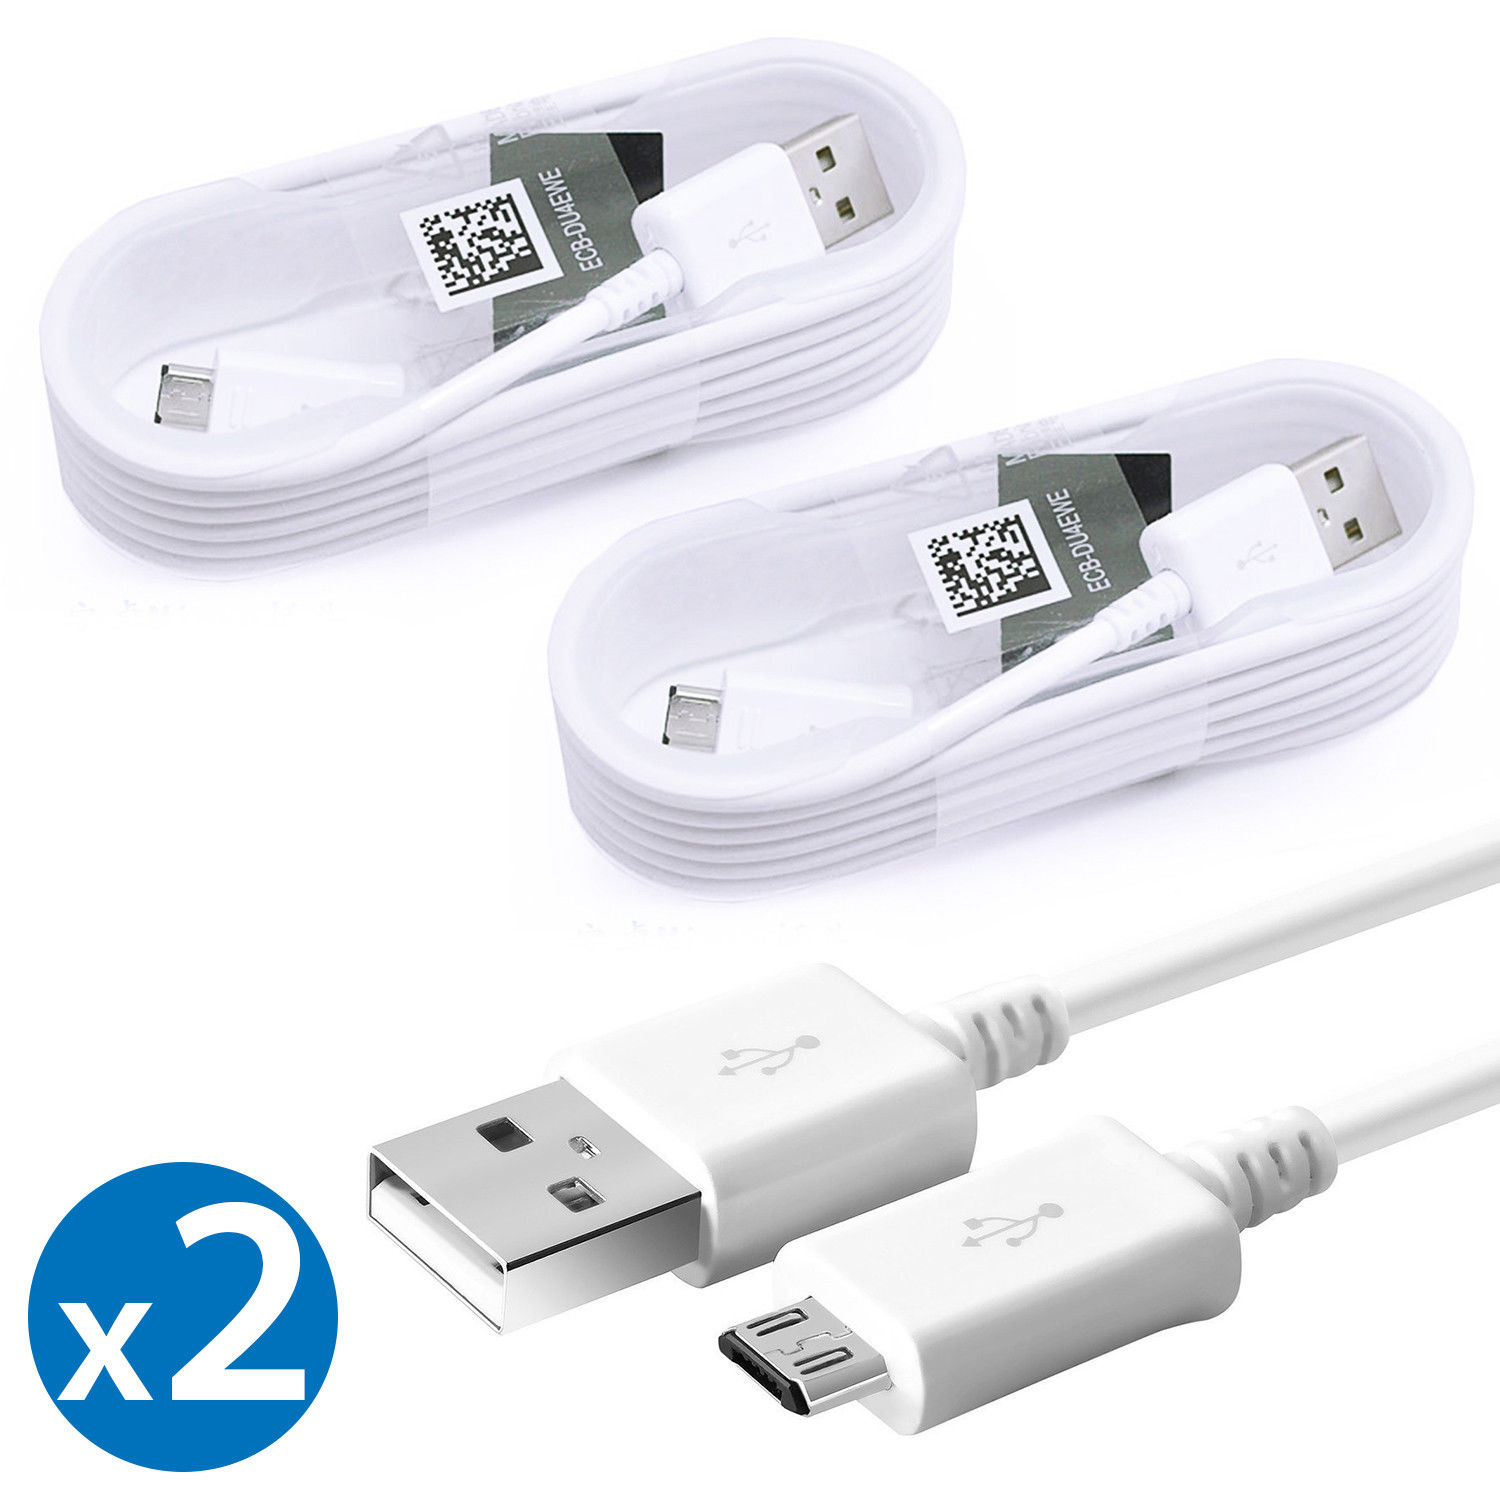 2 Pack Original Samsung Universal Micro USB Fast Charging Sync Data Cable For HTC One OnePlus 2 LG G3 Samsung Nokia Lumia Motorola Droid Sony Xperia Z3v Samsung Galaxy S6 Edge S7 Edge Note 4